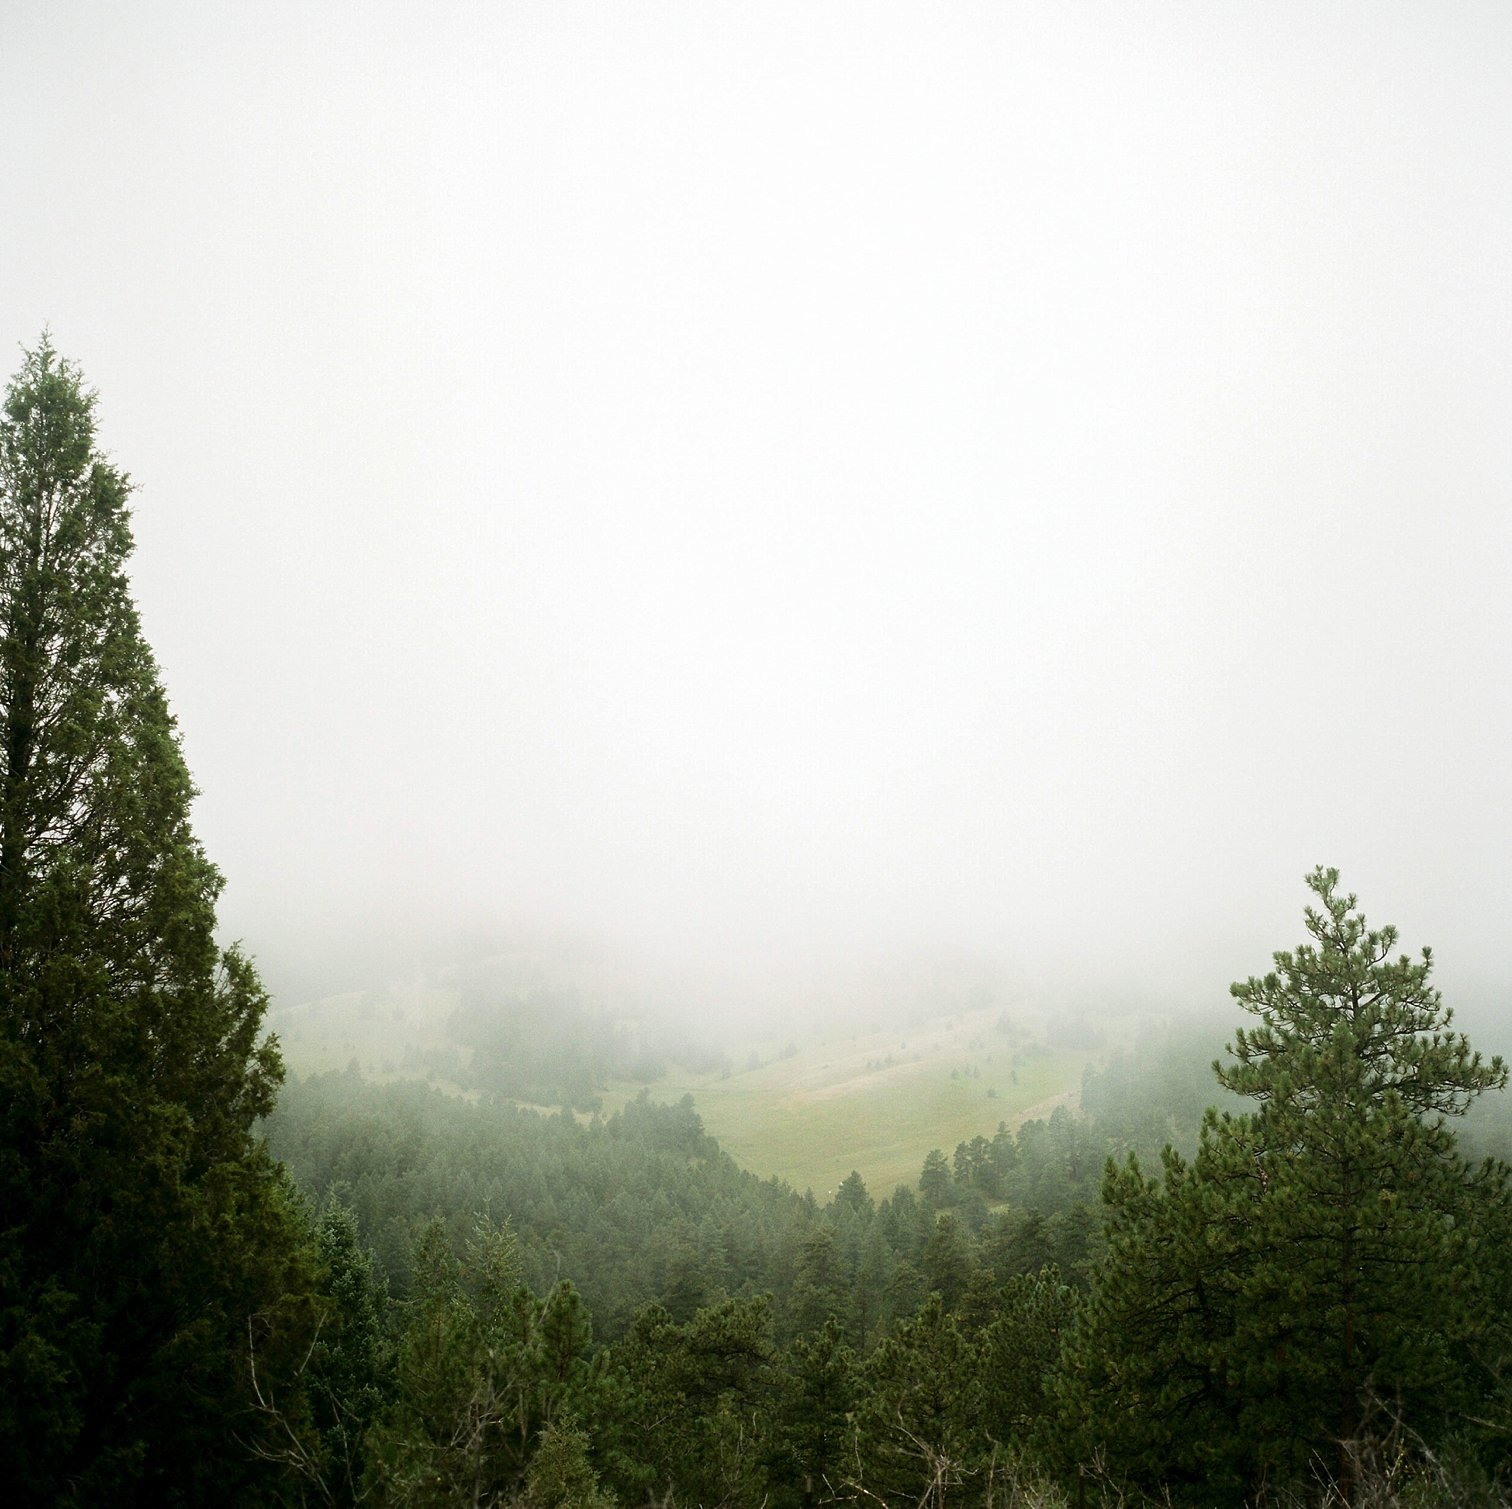 Colorado Engagement Photography, Colorado Engagement Photos, Denver Wedding Photographer, Engagement Photos In Colorado, Film Photographers In Colorado, Rolleiflex Portraits, Film Wedding Photographers, Best Engagement Photos In Colorado, Danielle DeFiore Photographers, Fog On Mountains, Golden Colorado